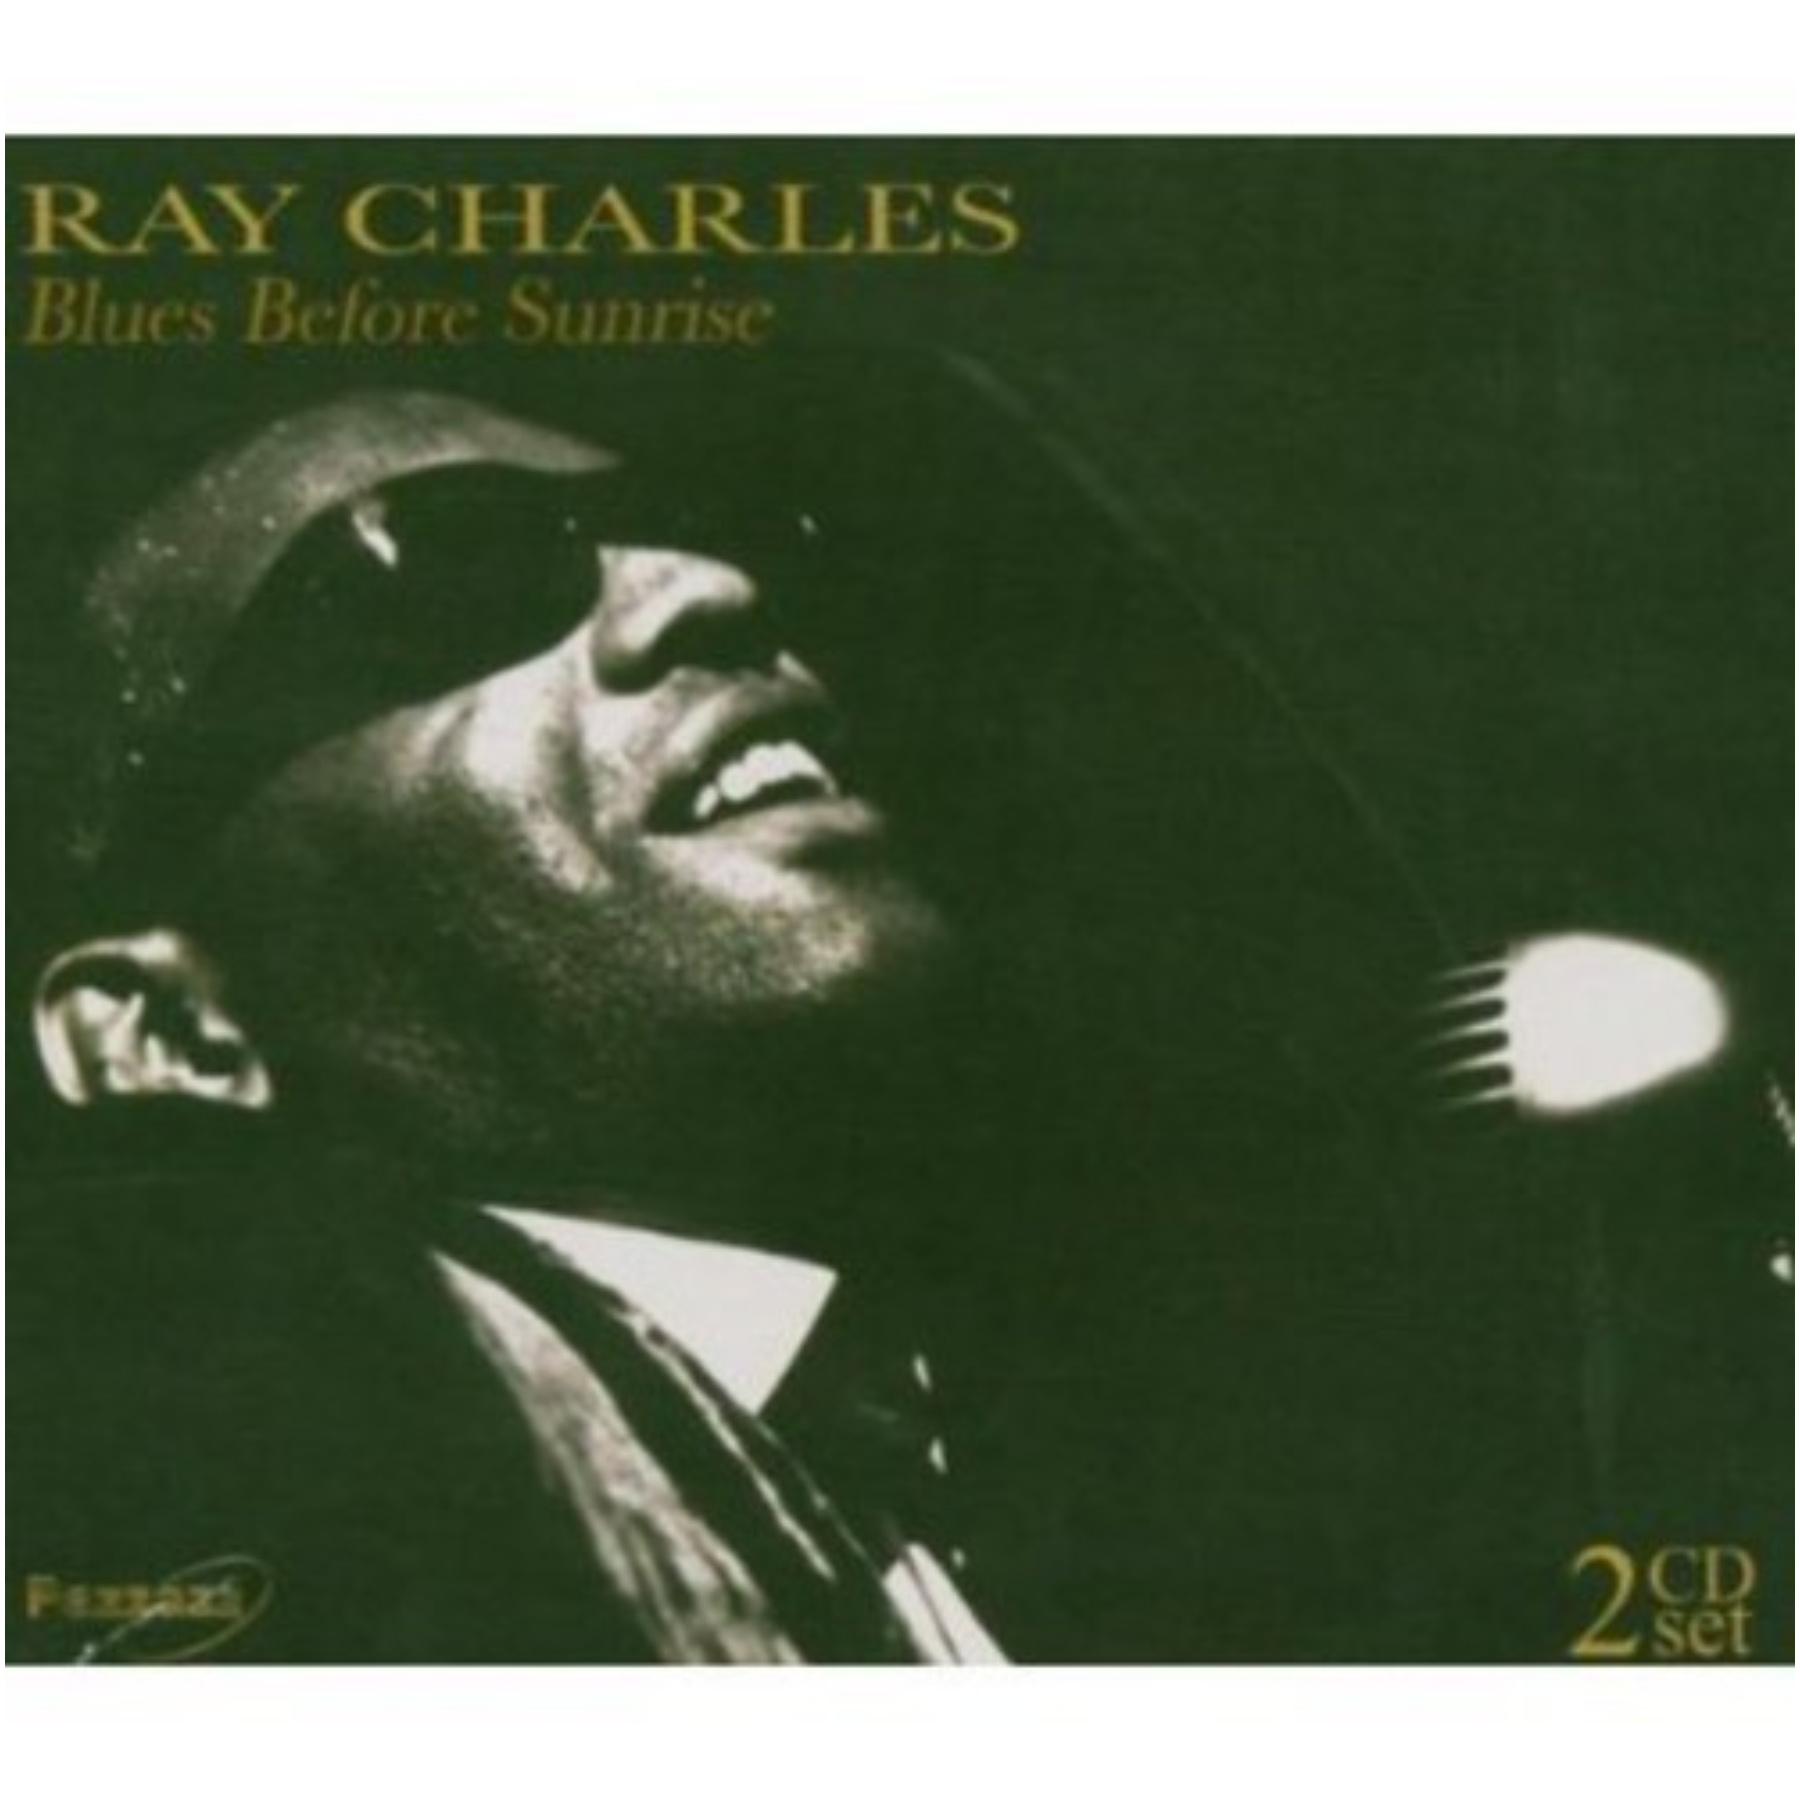 Ray Charles Blues Before Sunrise CD 88371701412